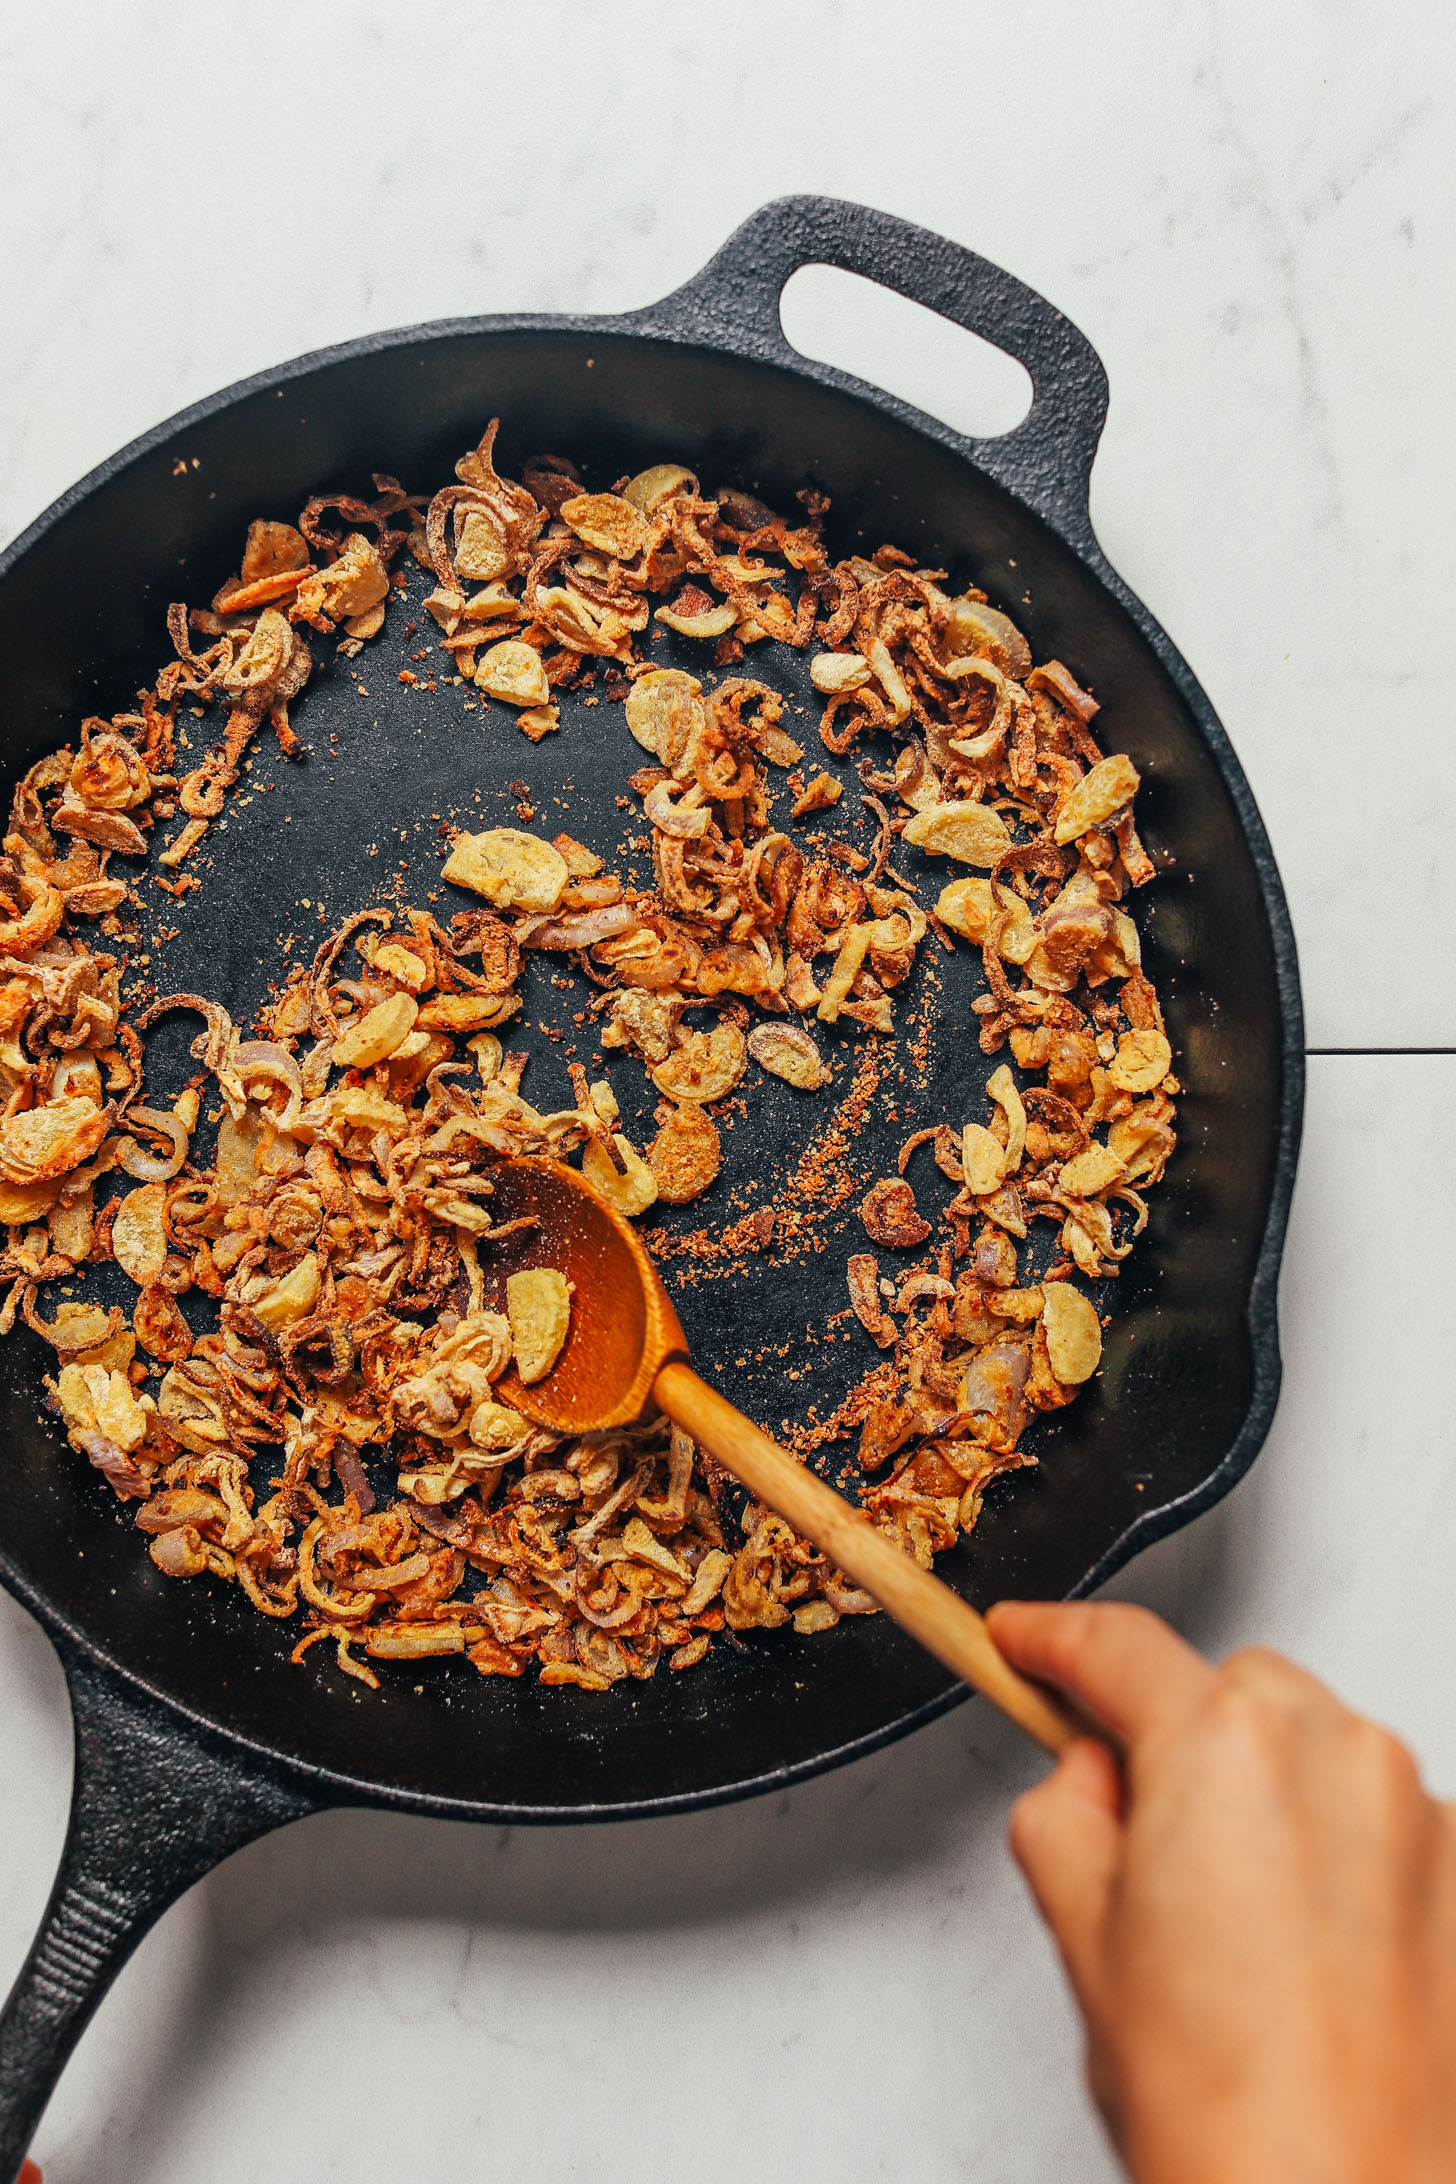 Cooking crispy shallots in a skillet to make our Grain-Free Mujadara recipe